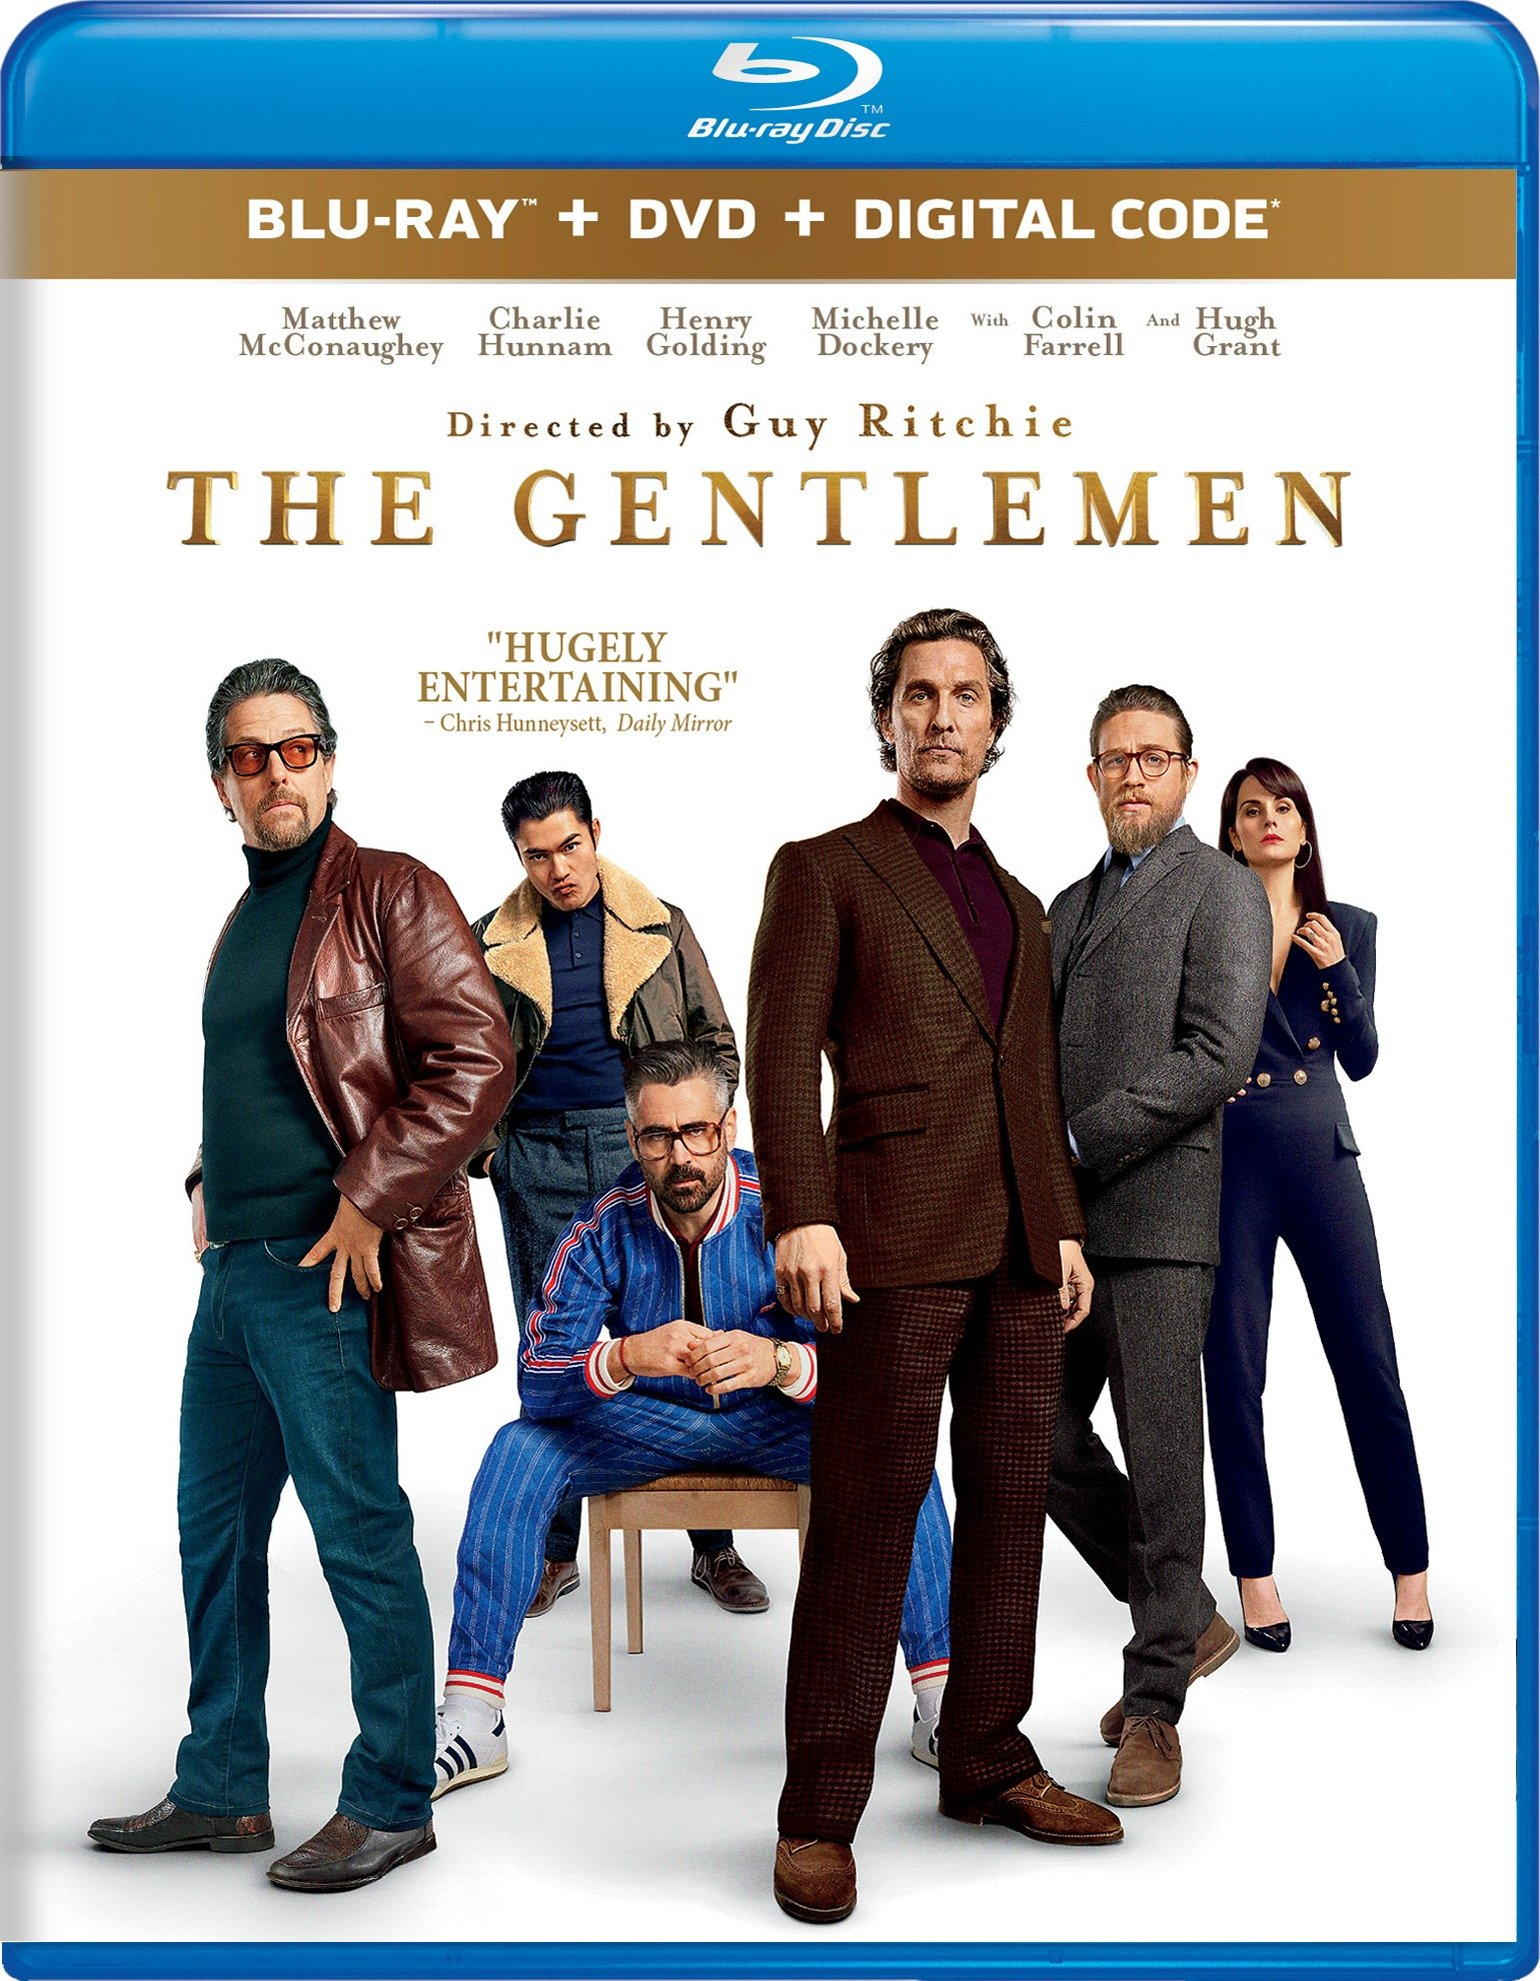 The Gentlemen (2020) poster image